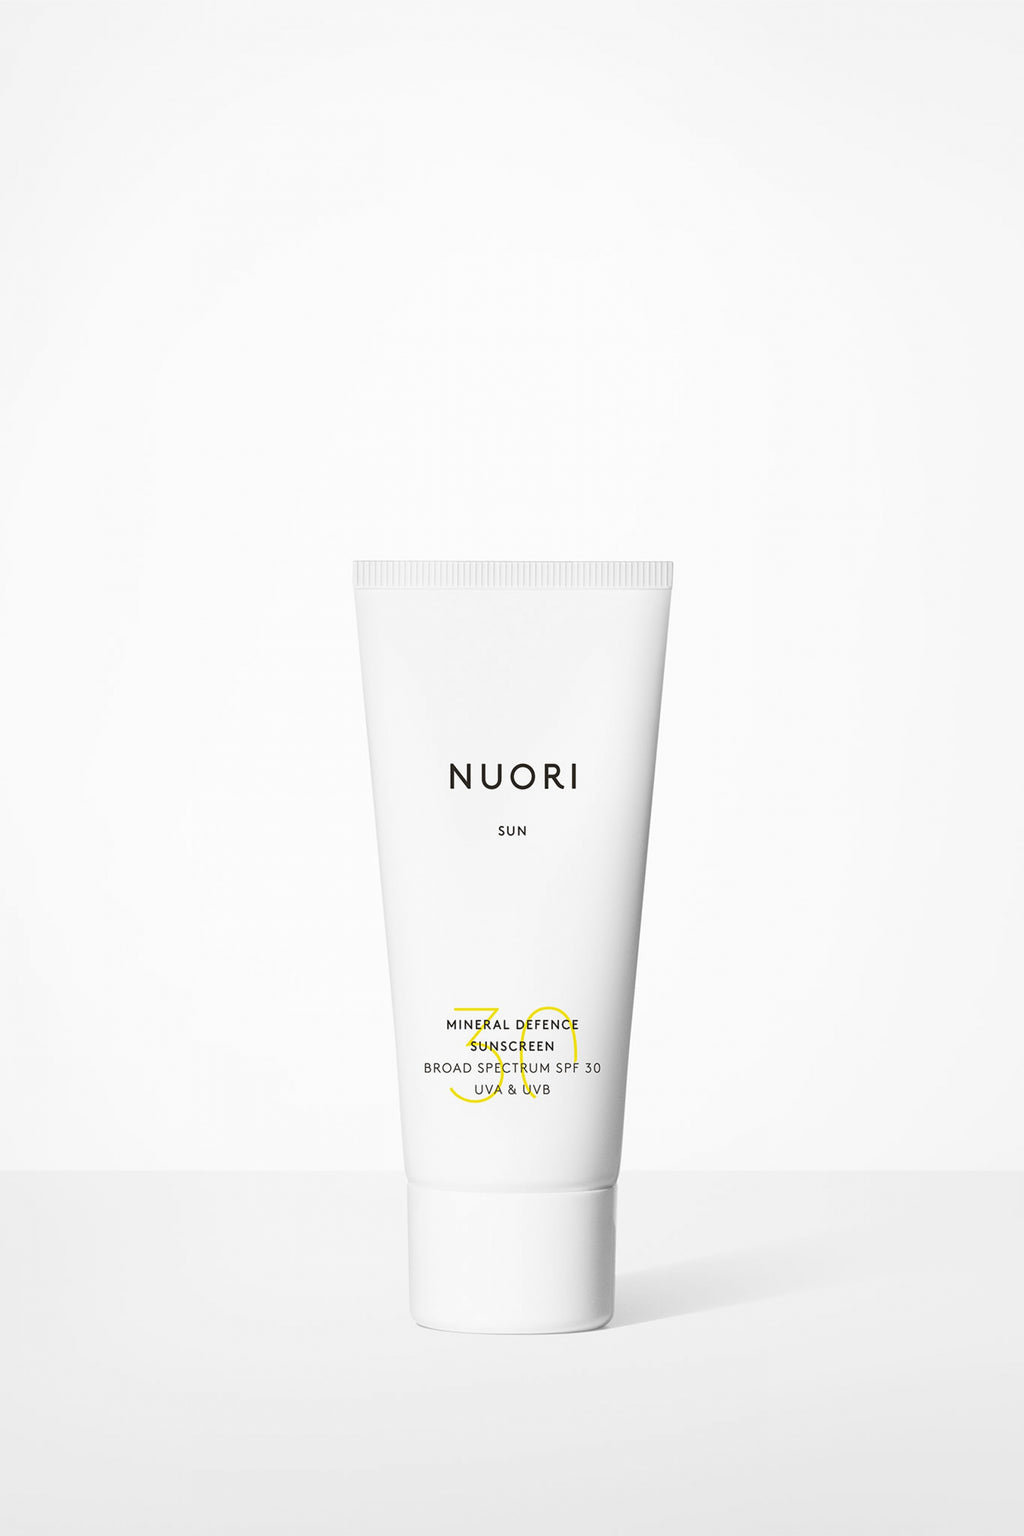 NUORI Mineral Defense Sunscreen (SPF 30)